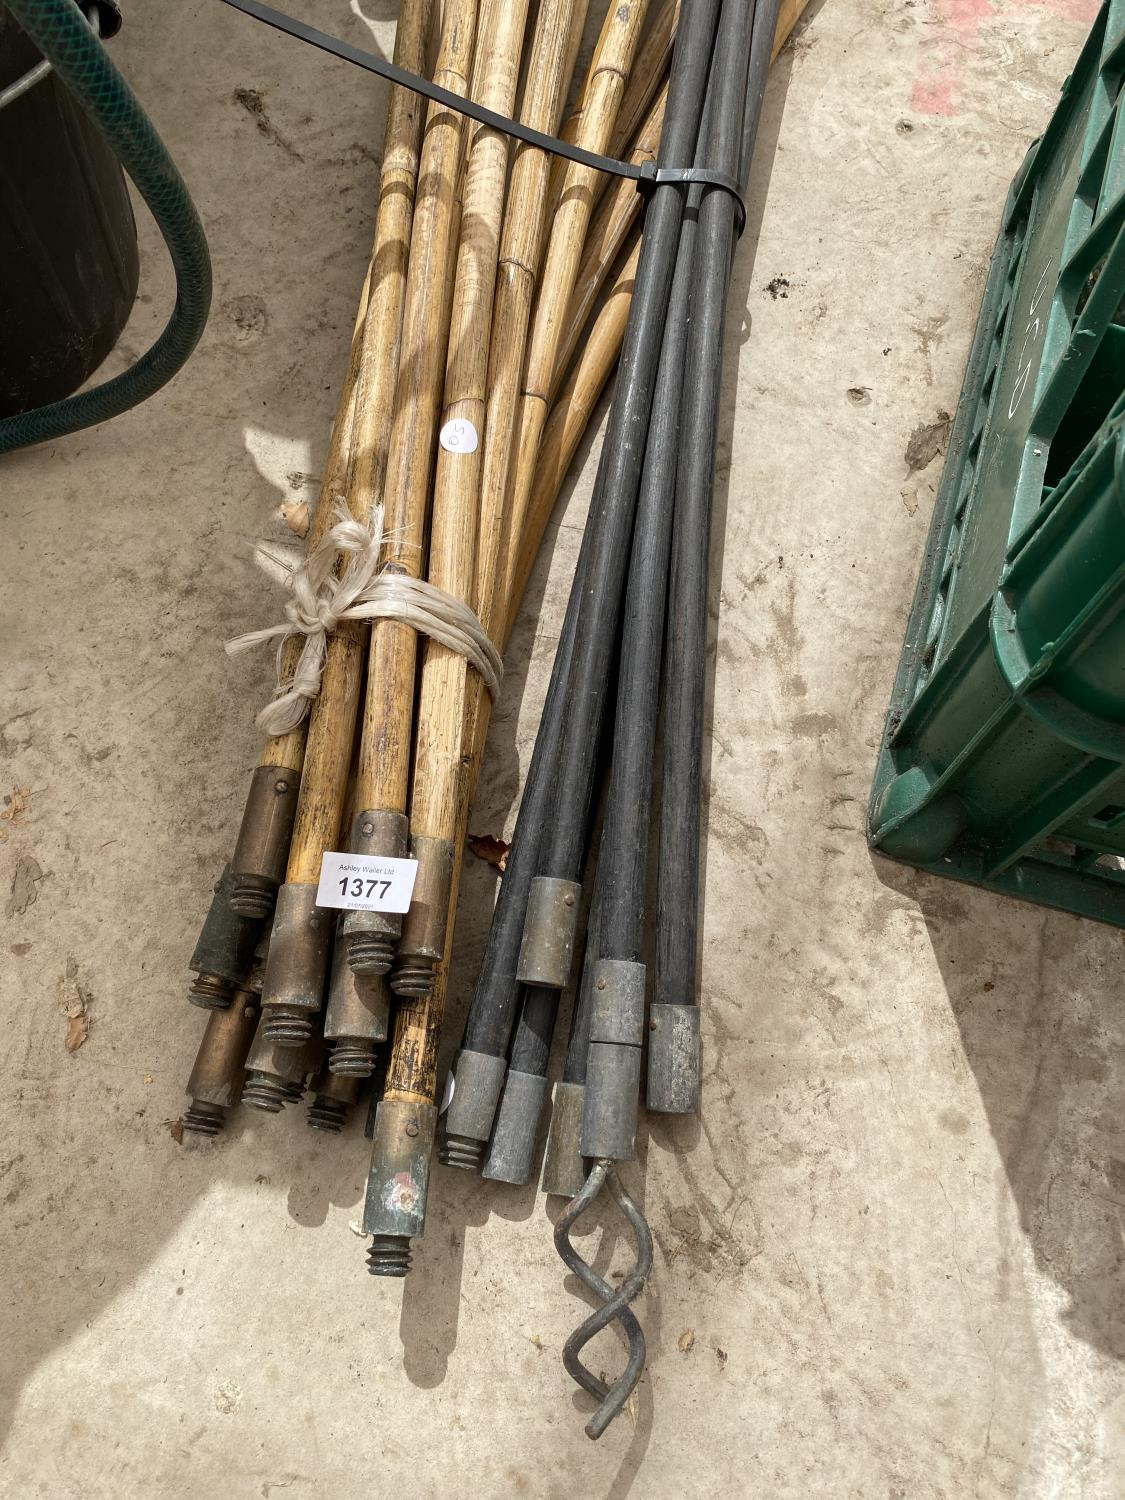 AN ASSORTMENT OF DRAINING RODS - Image 3 of 3